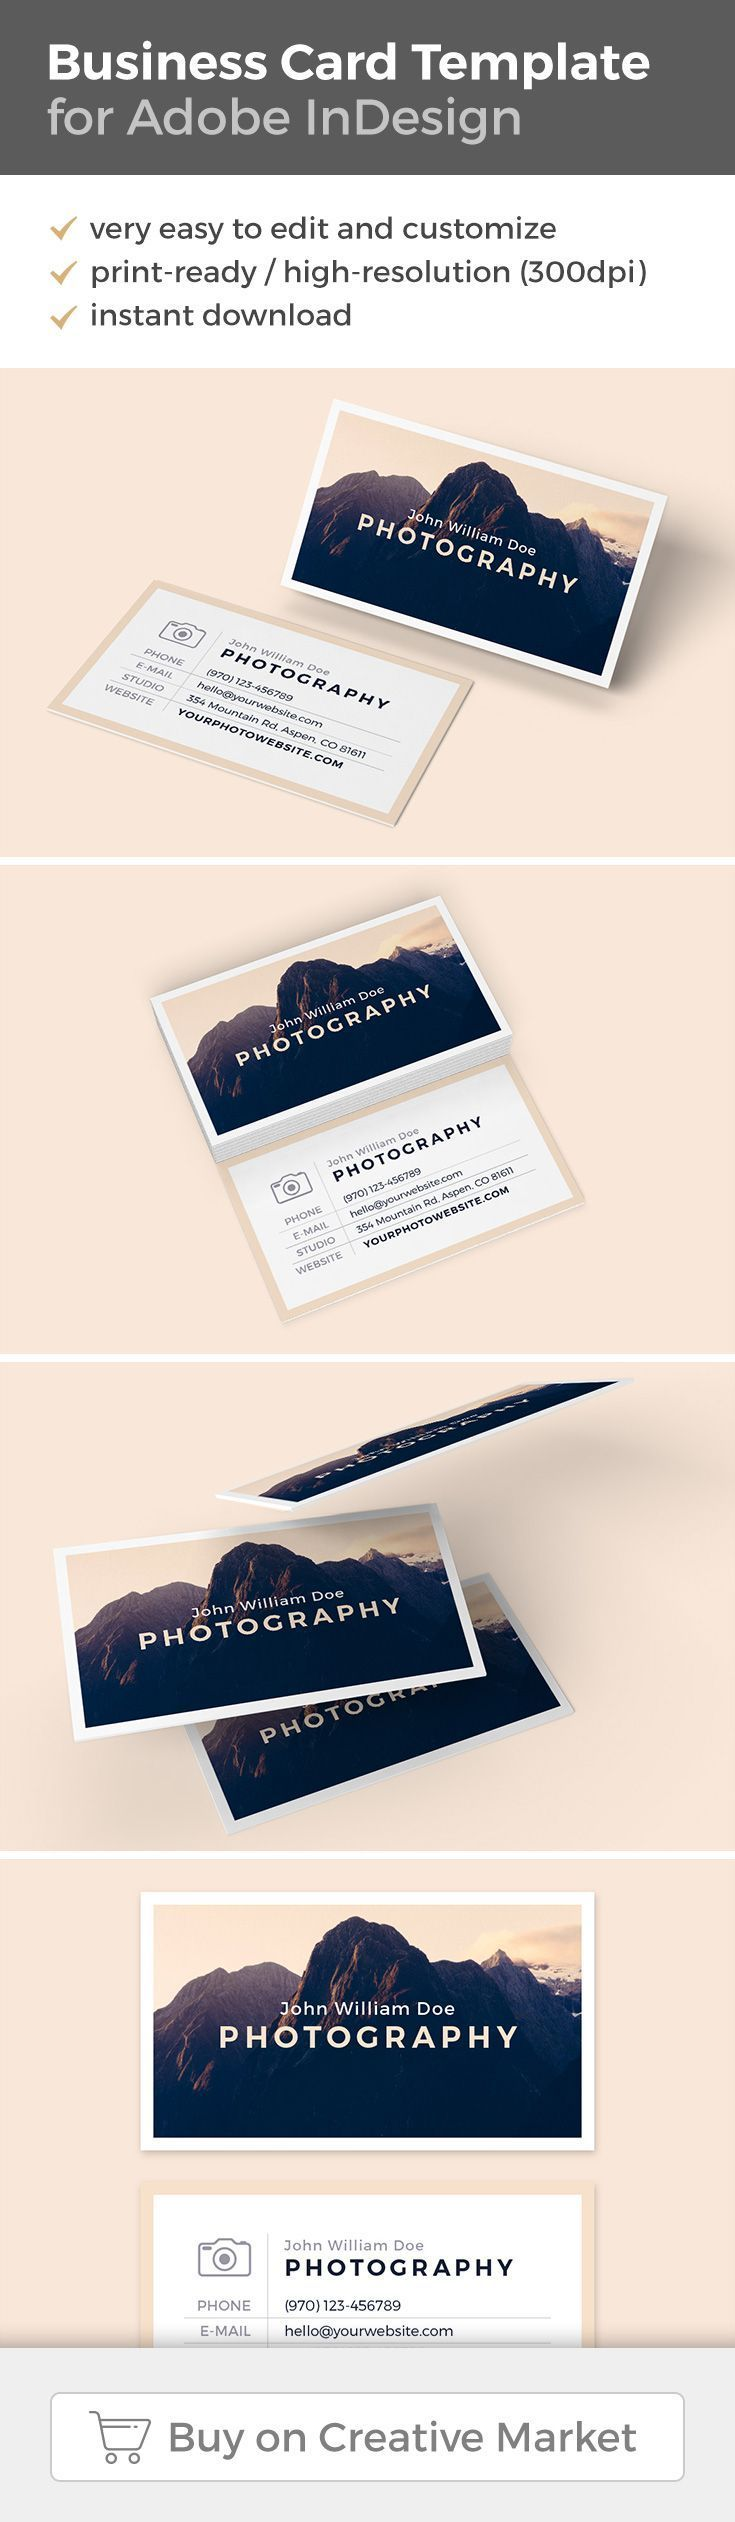 The 25 best best business cards ideas on pinterest creative the 25 best best business cards ideas on pinterest creative business card designs business check printing and ups printing magicingreecefo Images